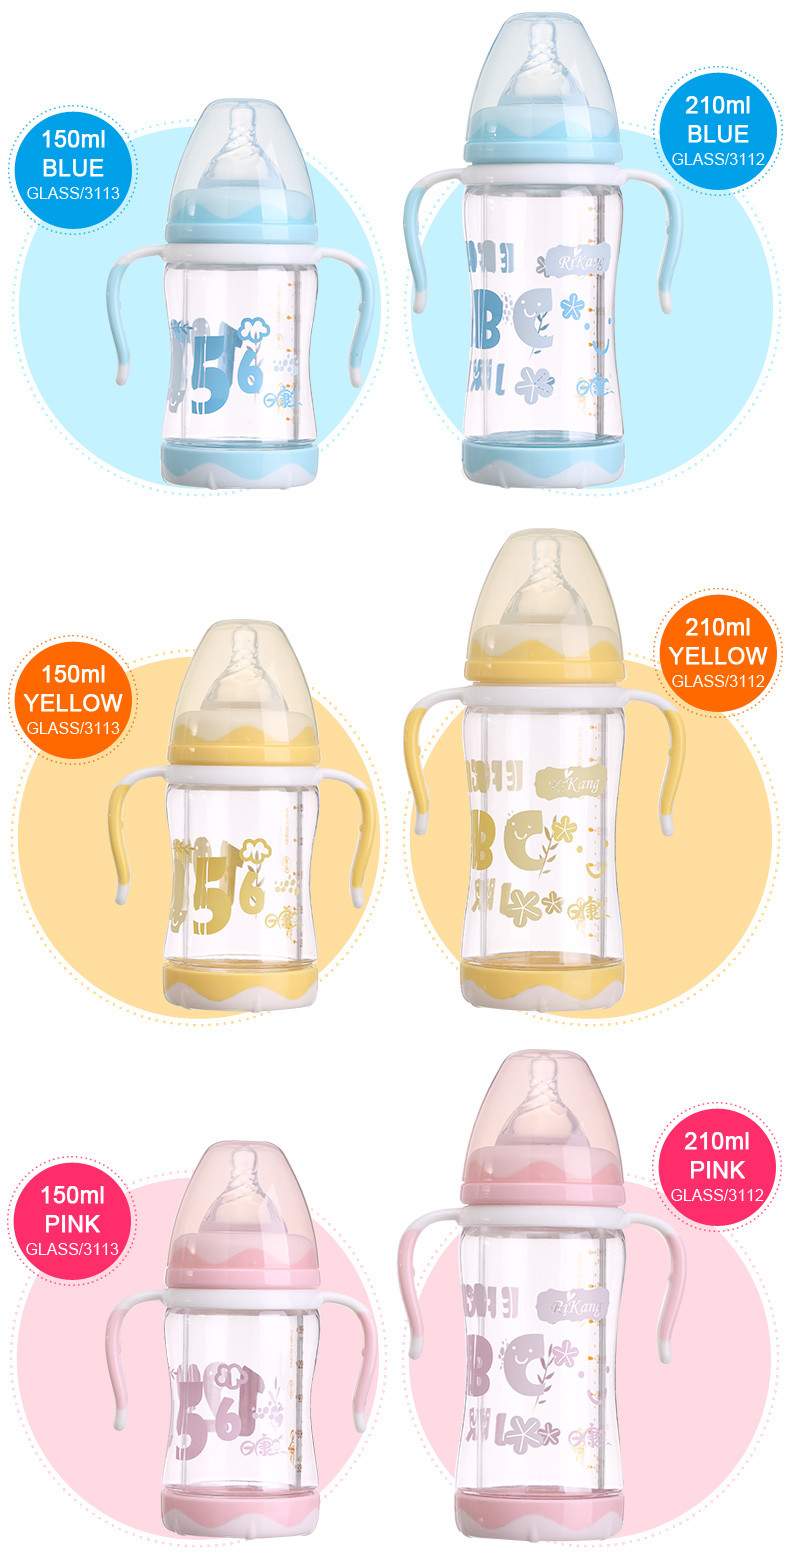 Popular Feeding Minions Wide-neck Baby Product Glass Baby Bottle